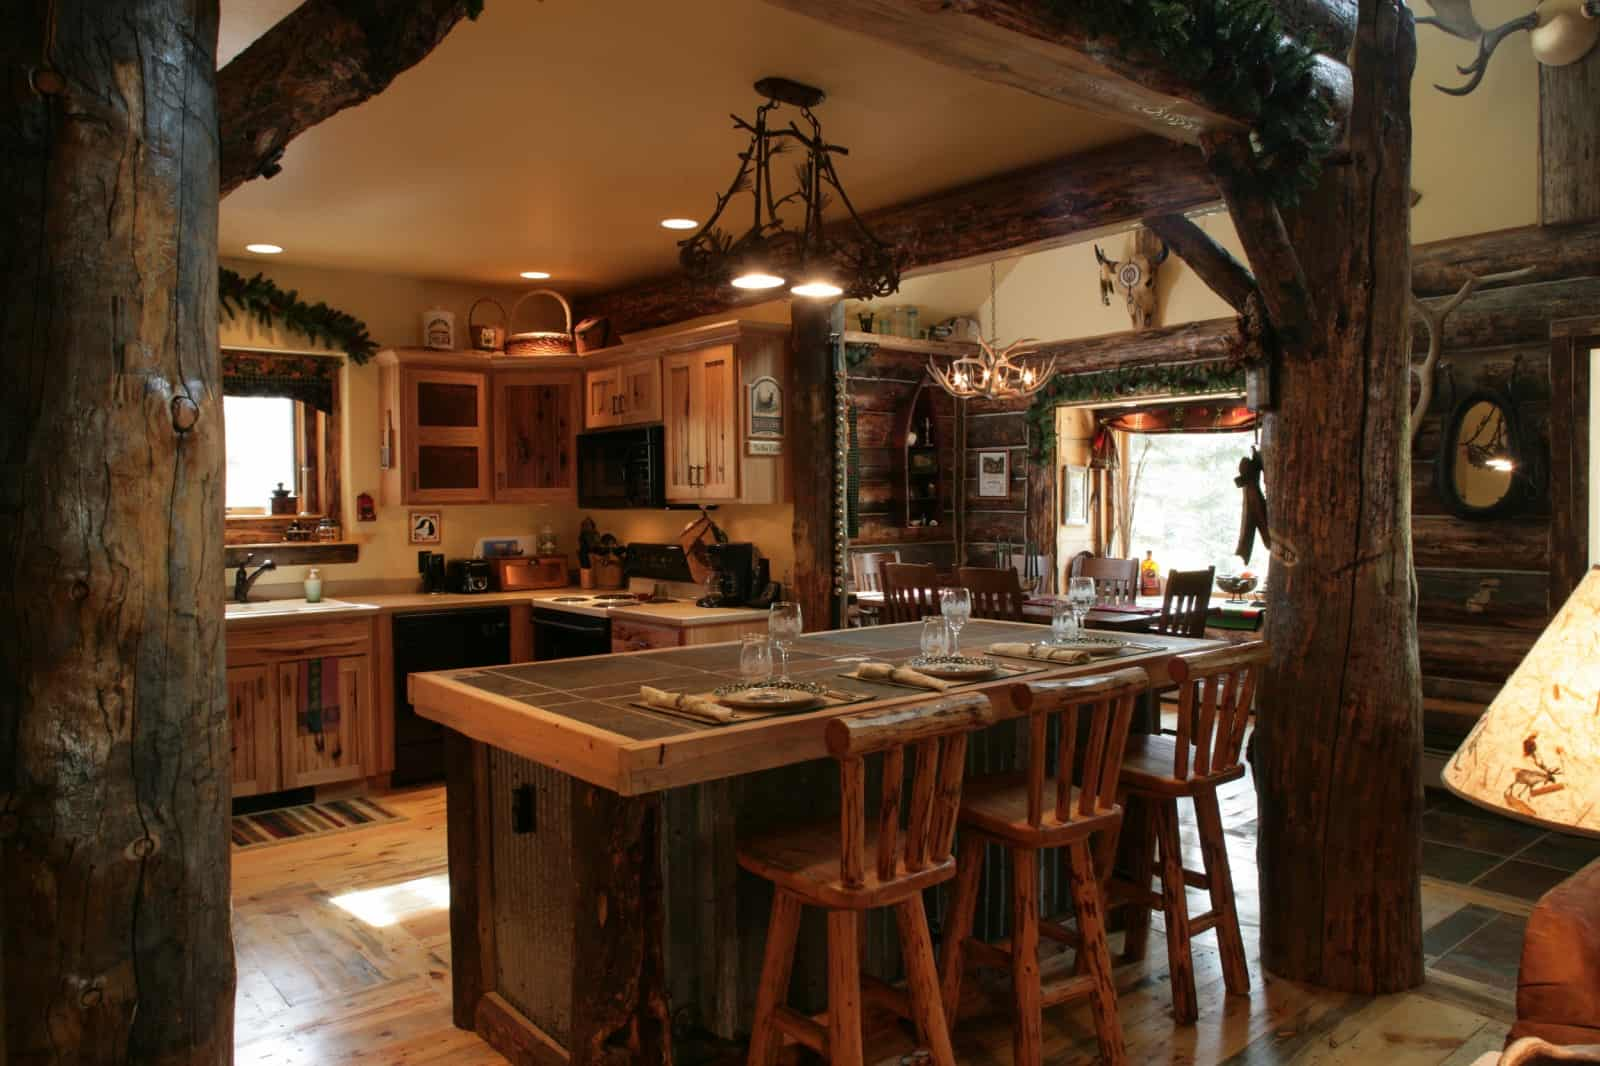 Interior Design Home Ideas Interior Design Trends 2017 Rustic Kitchen Decor House